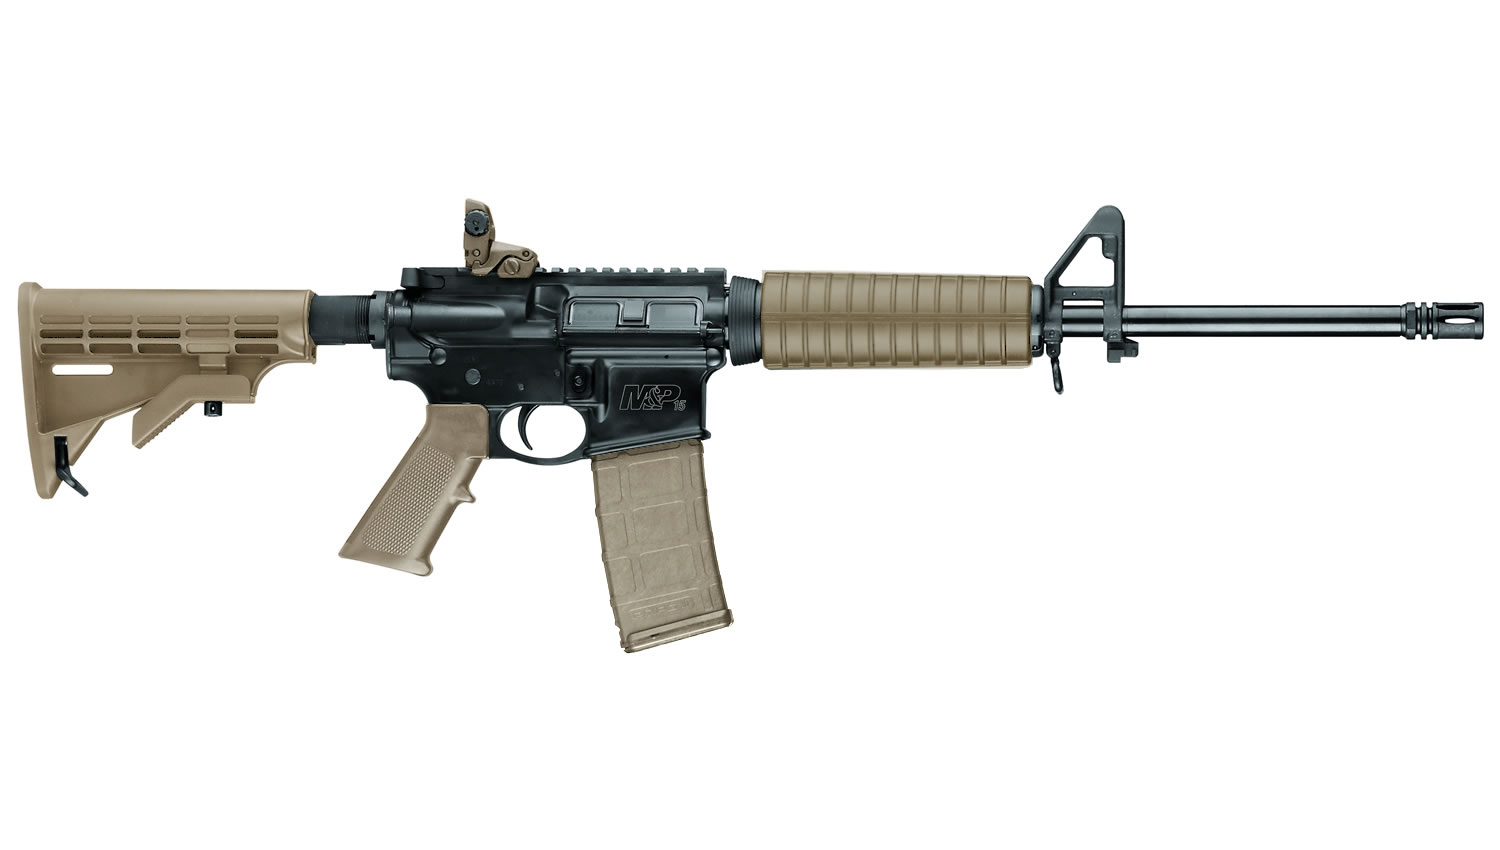 No. 19 Best Selling: SMITH AND WESSON MP15 SPORT II 5.56 FDE RIFLE